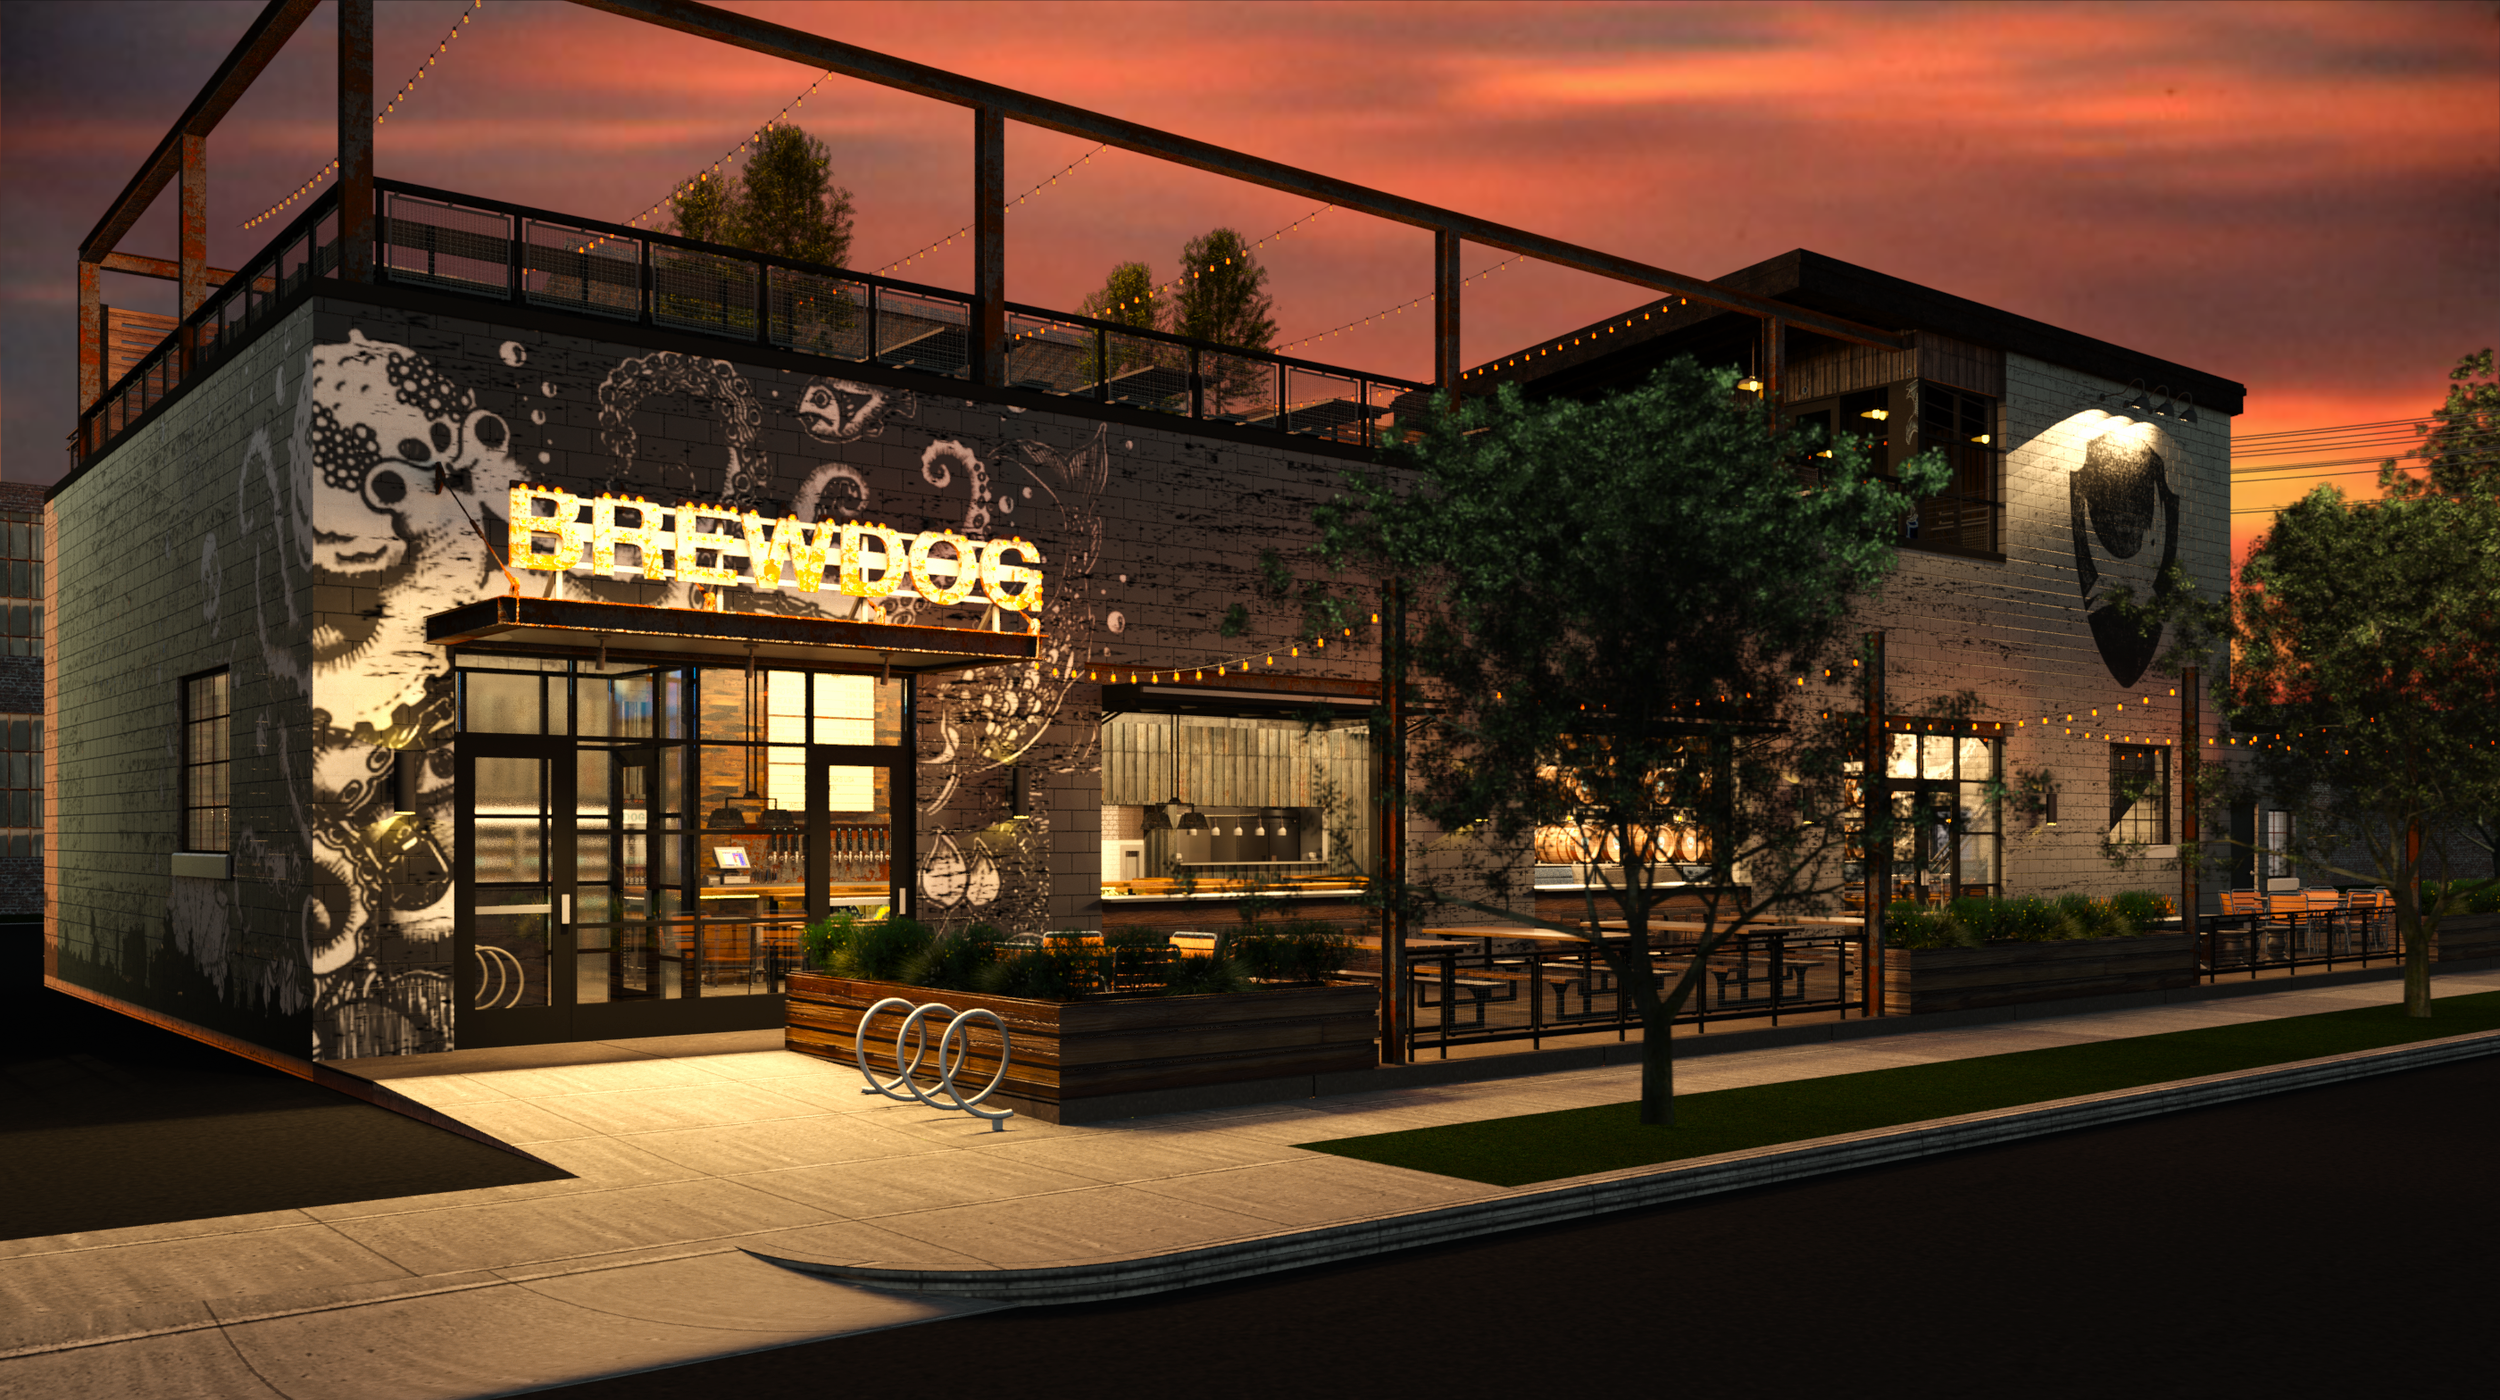 BrewDog_Franklinton_-_Central_blacount.rvt_2017-May-21_07-46-30PM-000__Render_-_Exterior_Looking_West_Night.png